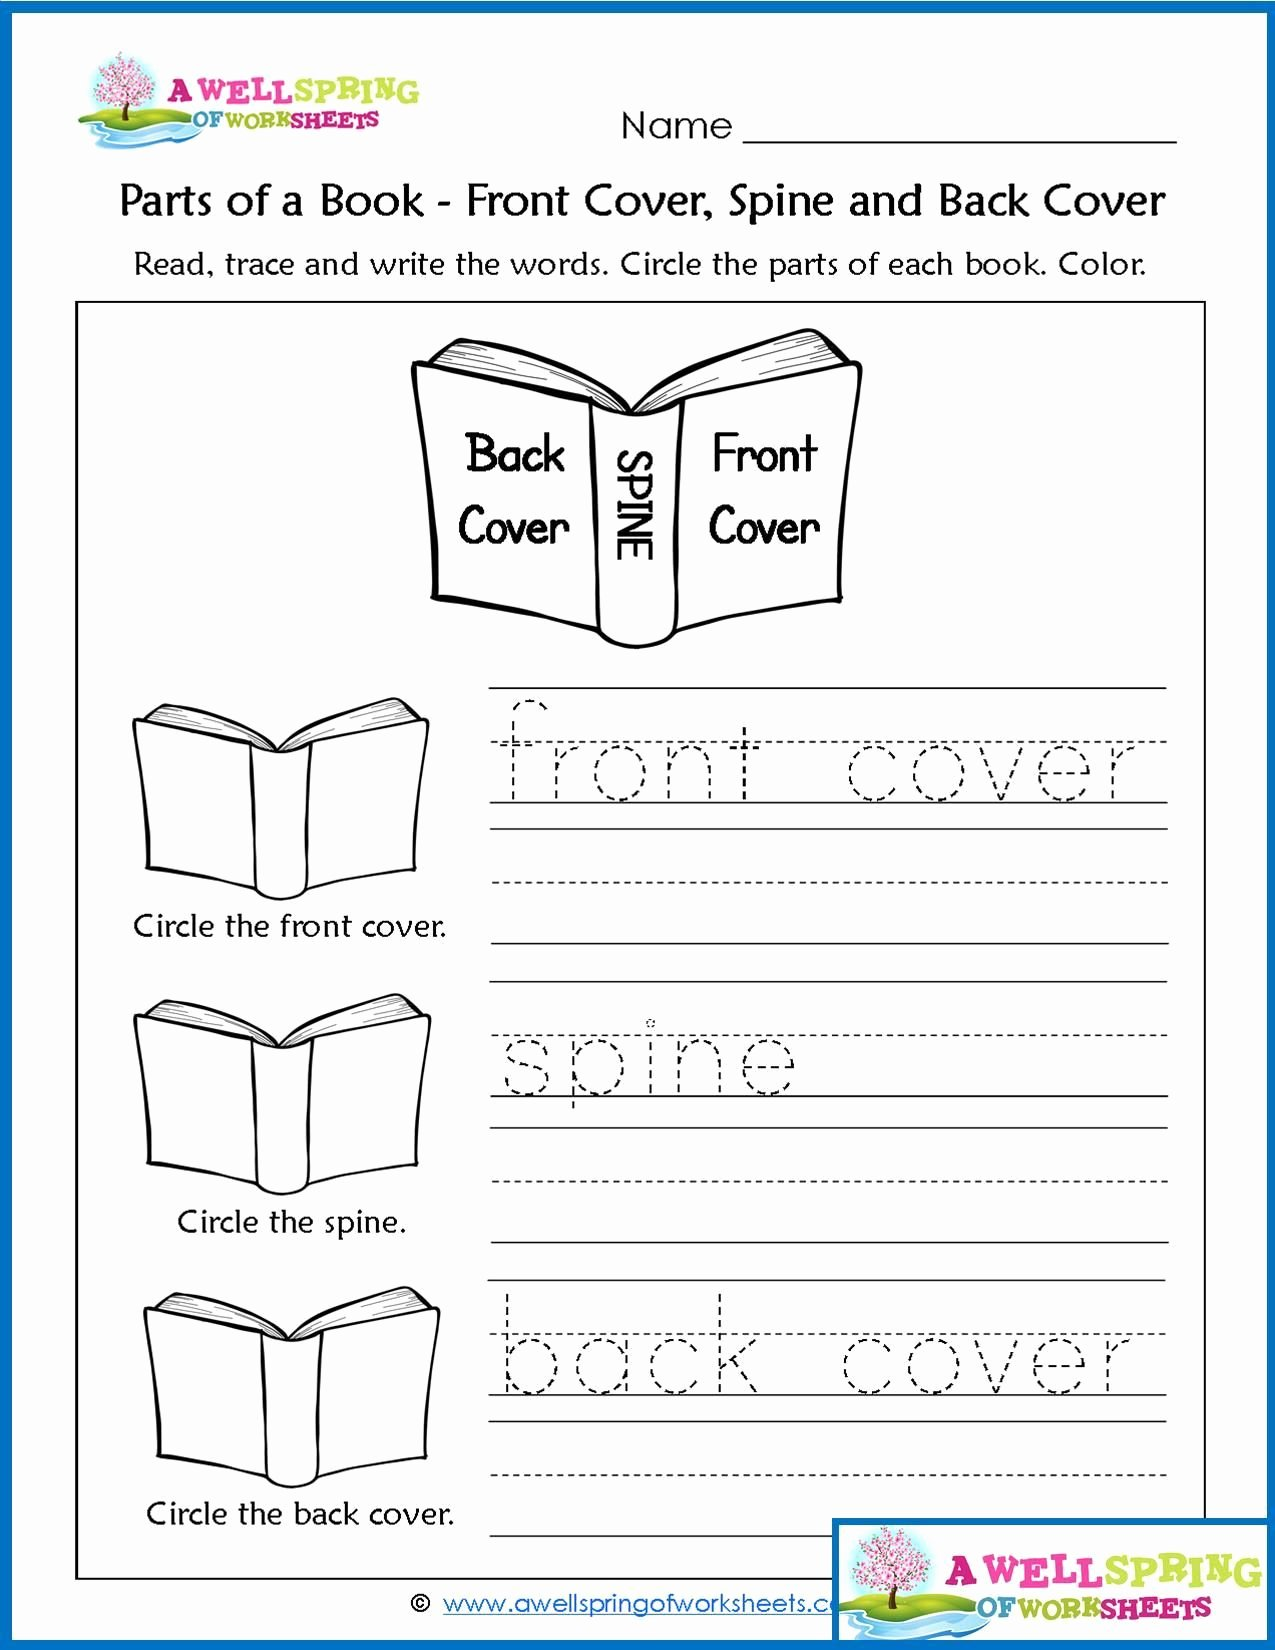 Parts Of A Book Worksheet Best Of Worksheets by Subject Concepts Of Print